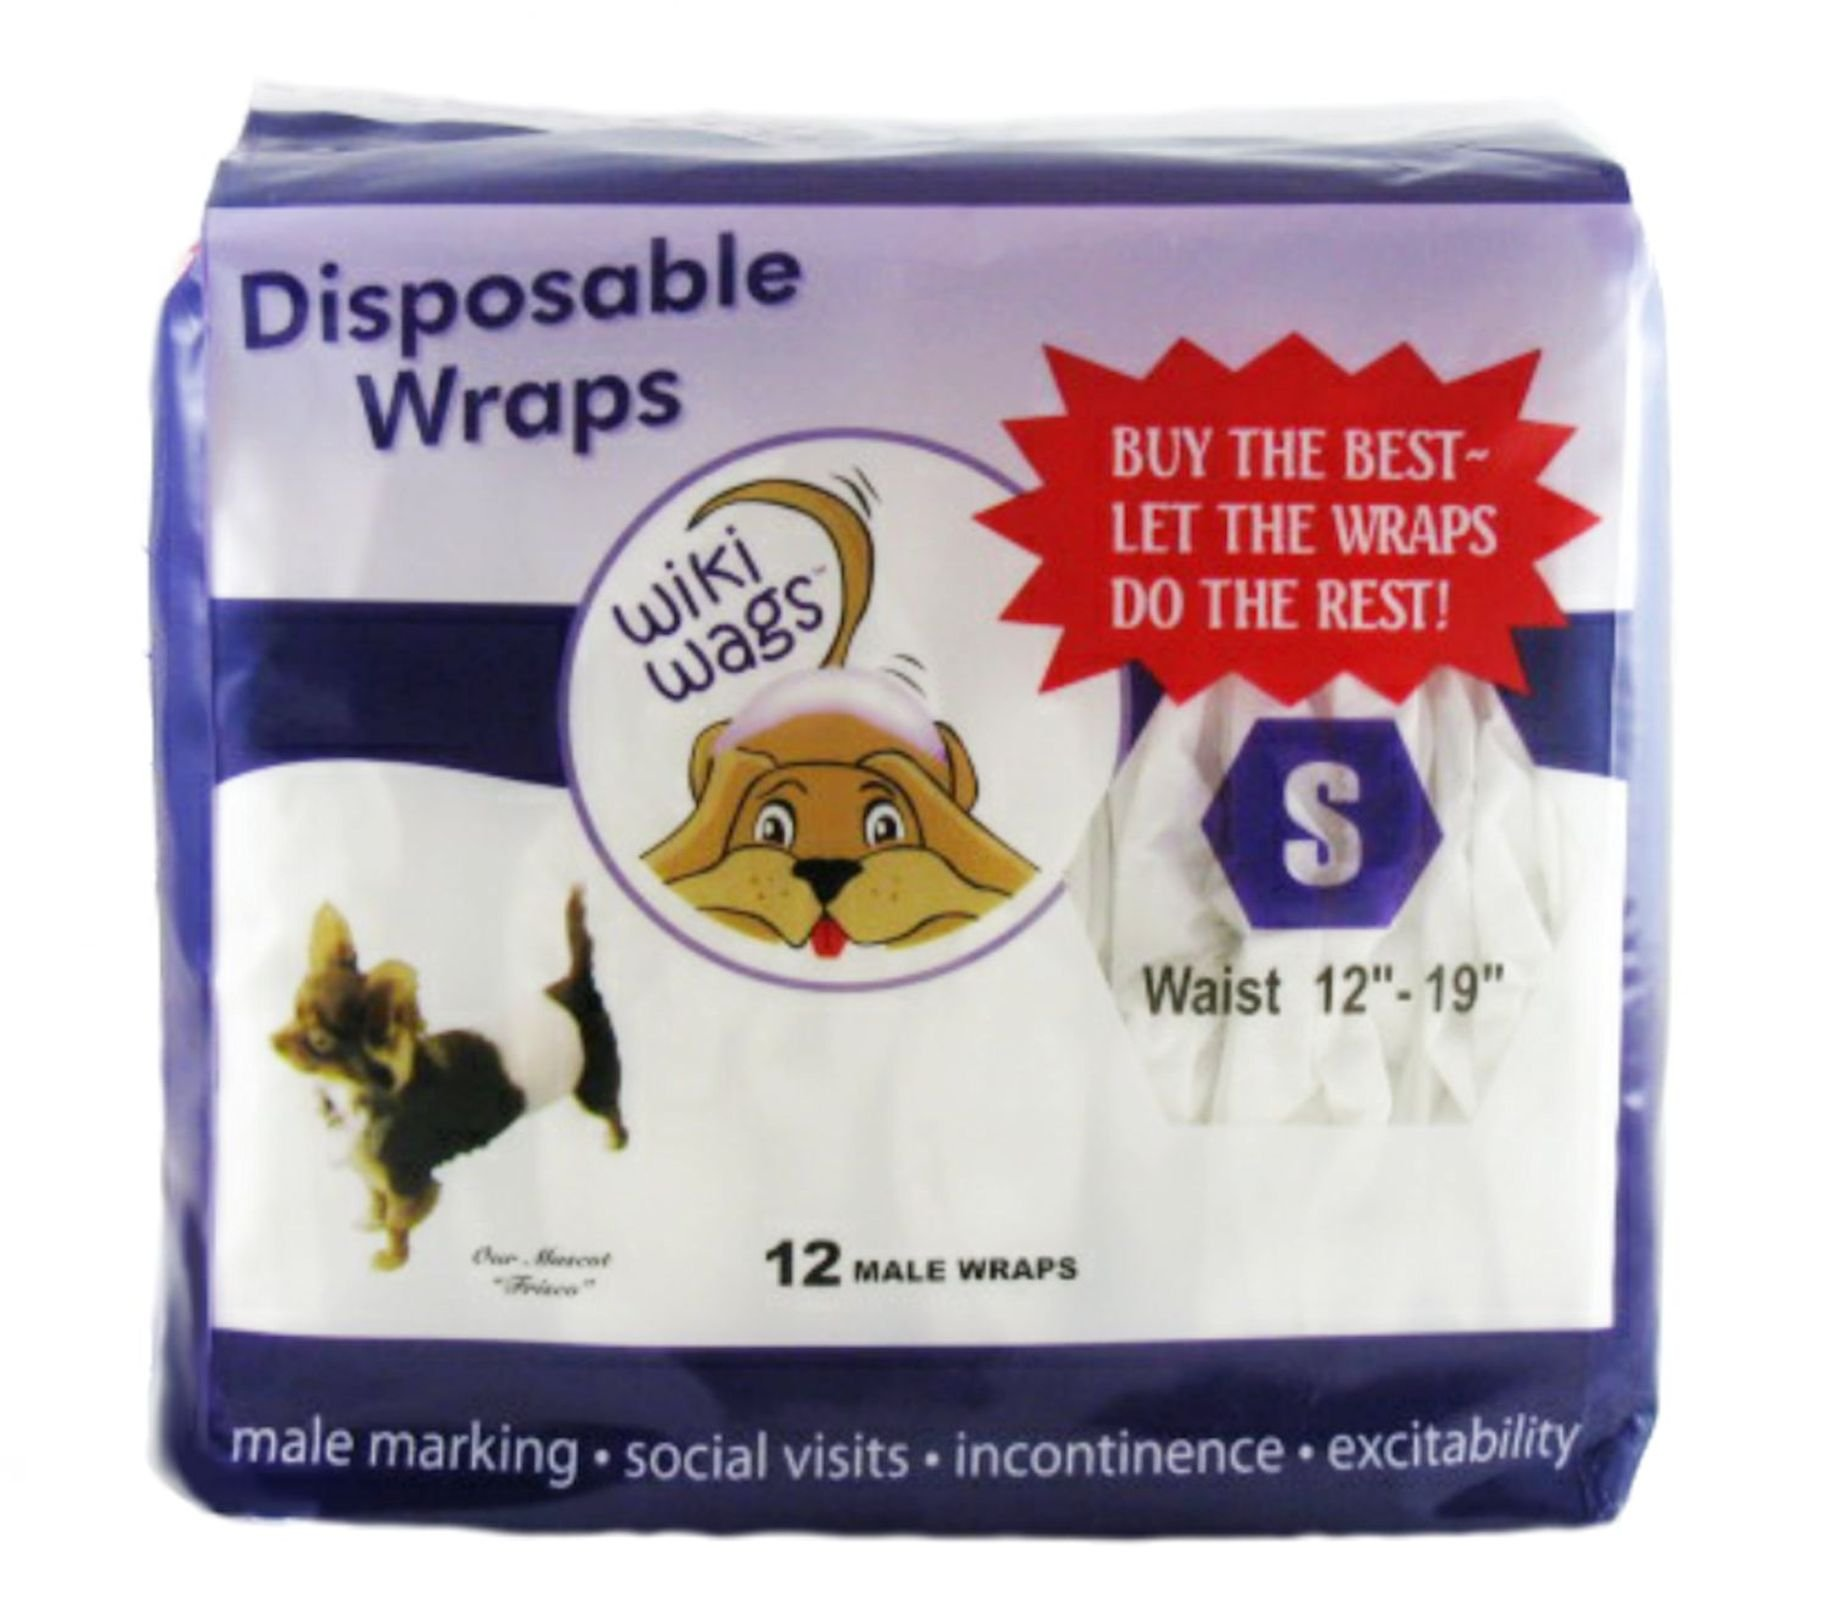 Wiki Wags Brand 12 Small Disposable Male Dog Wraps (Waist: 12''-19'')